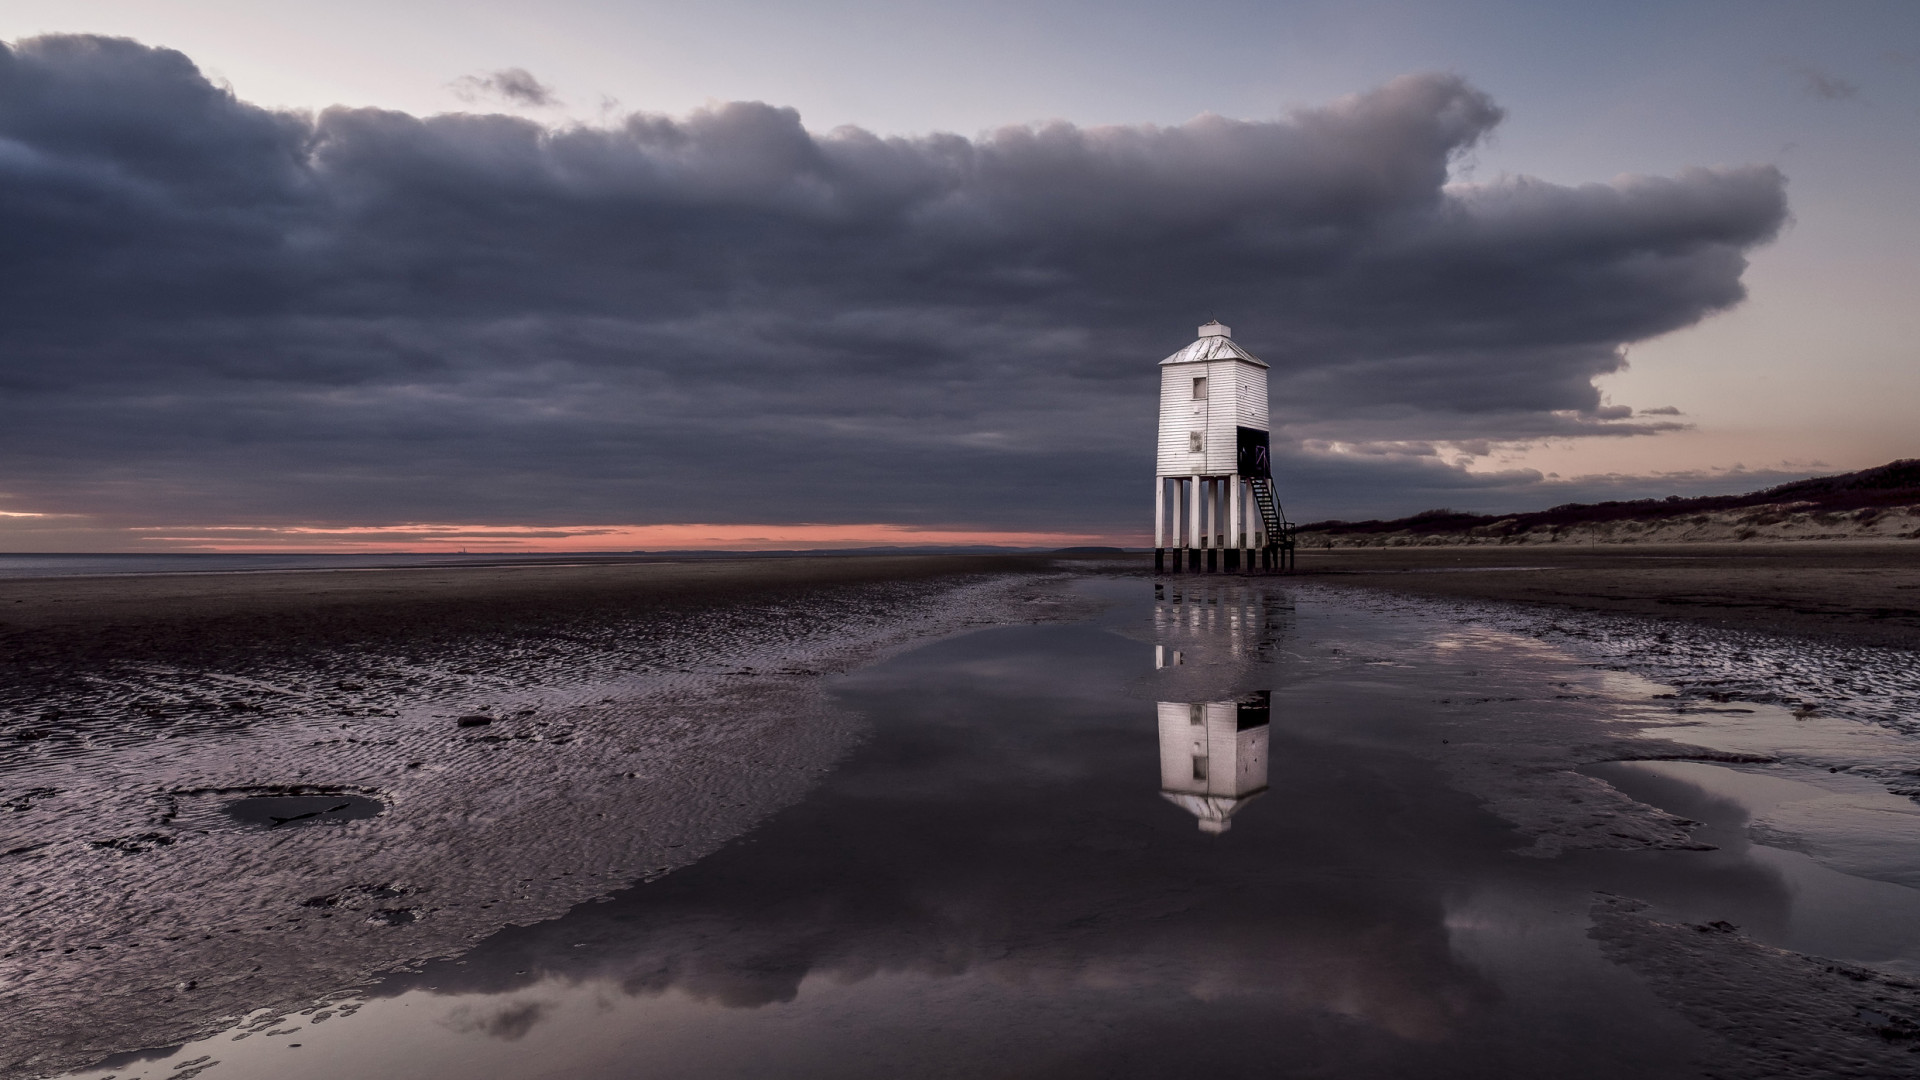 Sunset next to a wooden lighthouse in Somerset